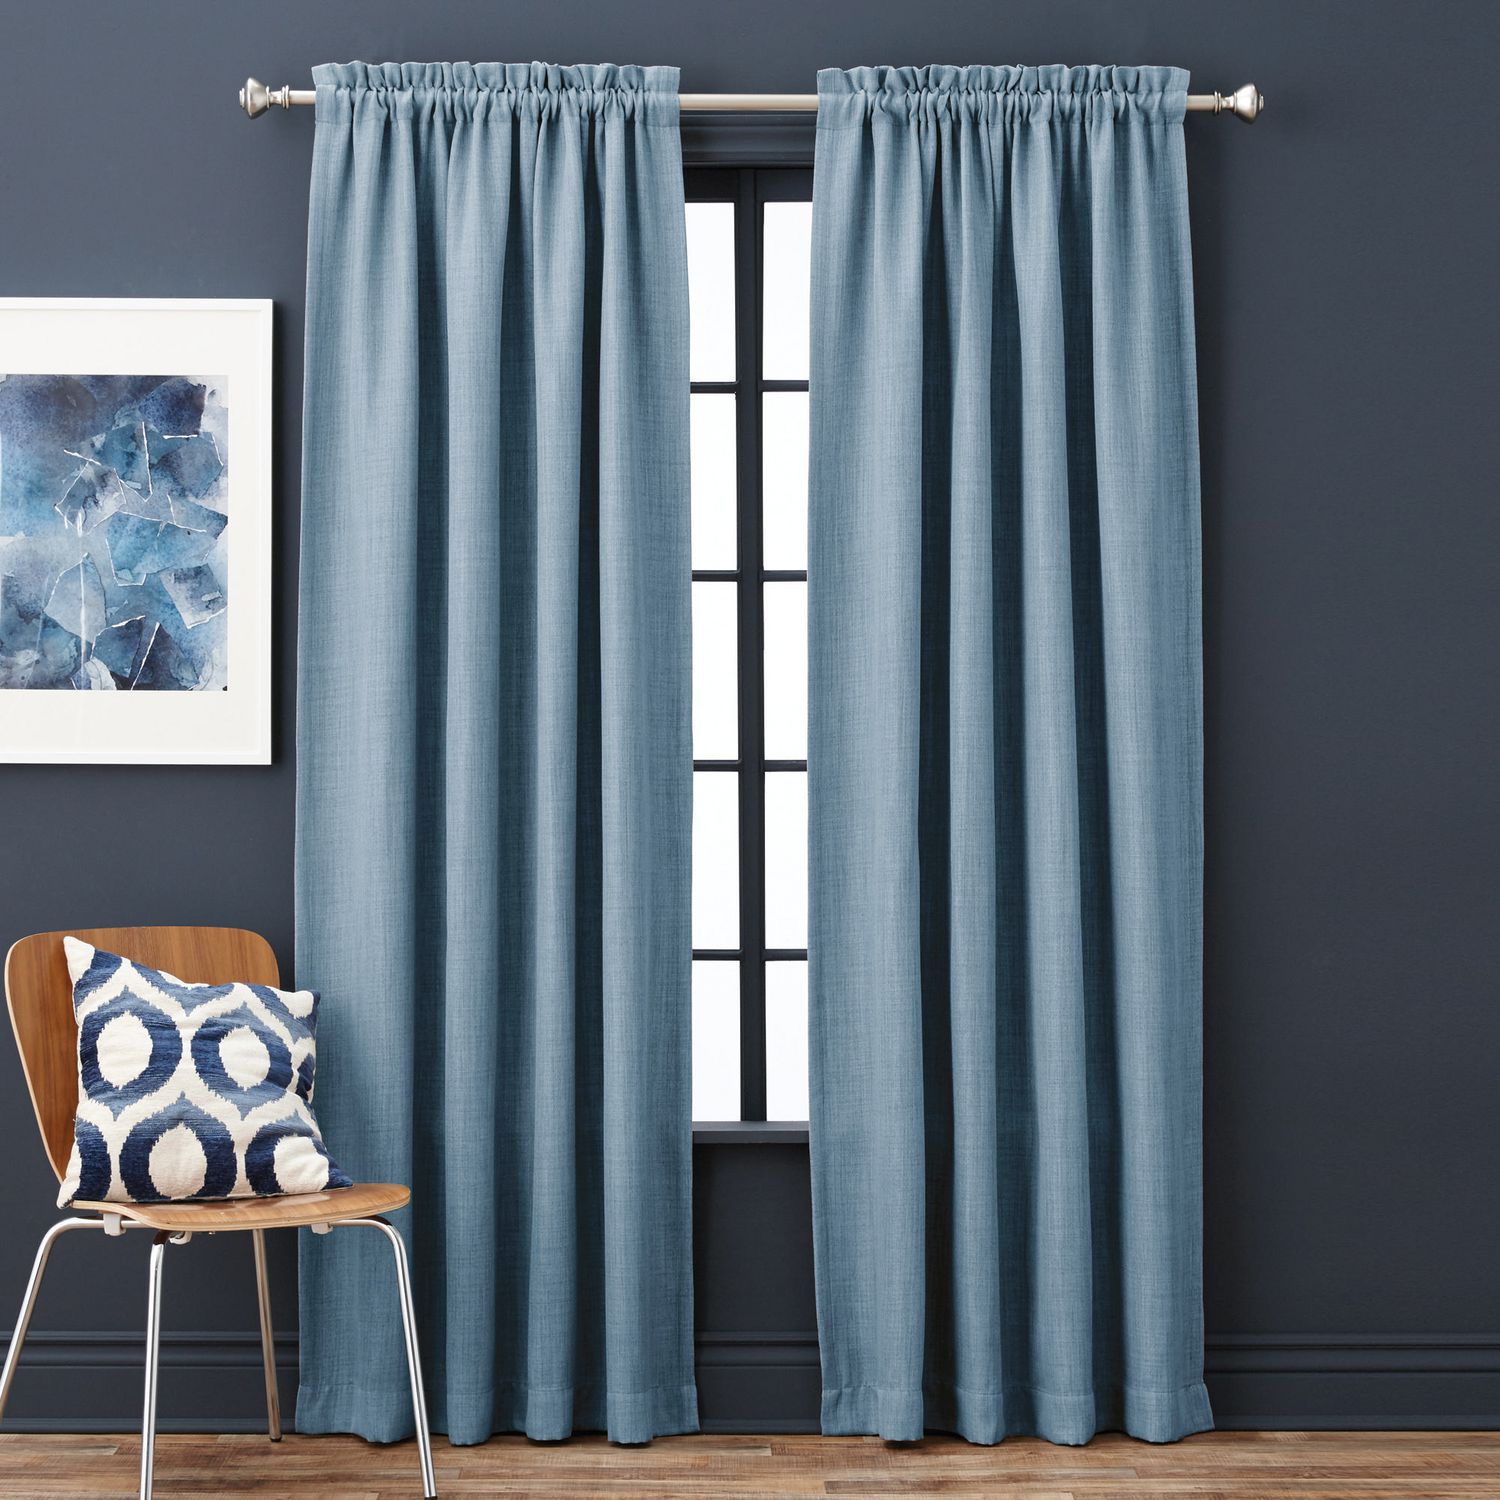 pencil half damask window pleat picture curtain p blue of flock luxury curtains pair x